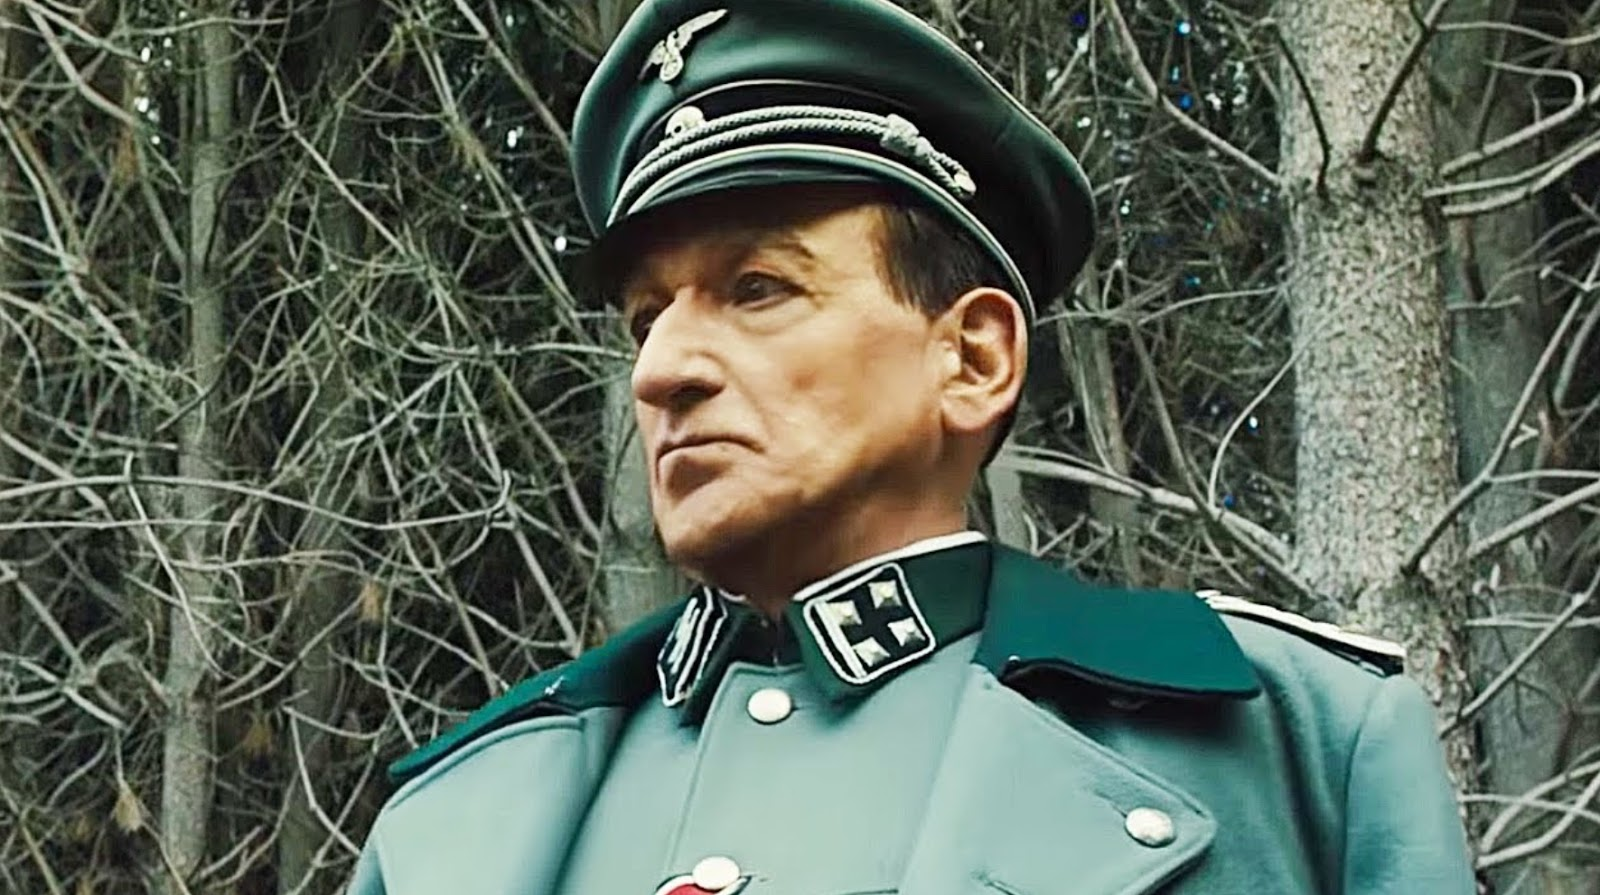 Ben Kingsley as Adolf Eichmann